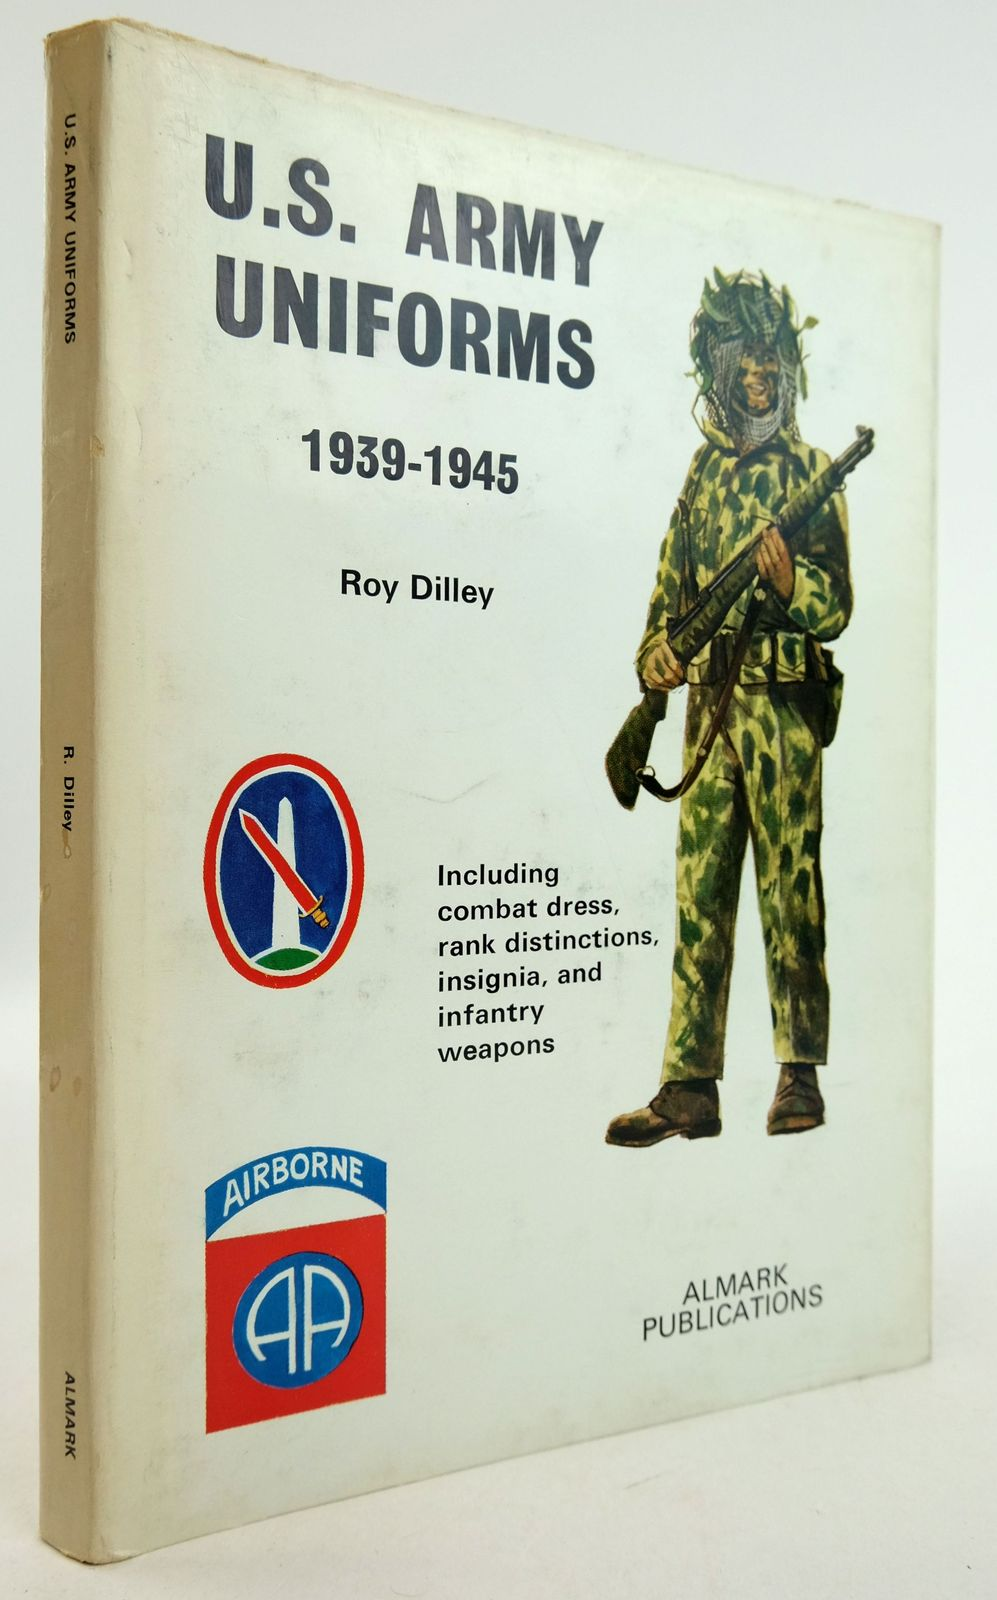 Photo of UNITED STATES ARMY UNIFORMS 1939-1945 written by Dilley, Roy published by Almark Publishing Co. Ltd. (STOCK CODE: 1819741)  for sale by Stella & Rose's Books